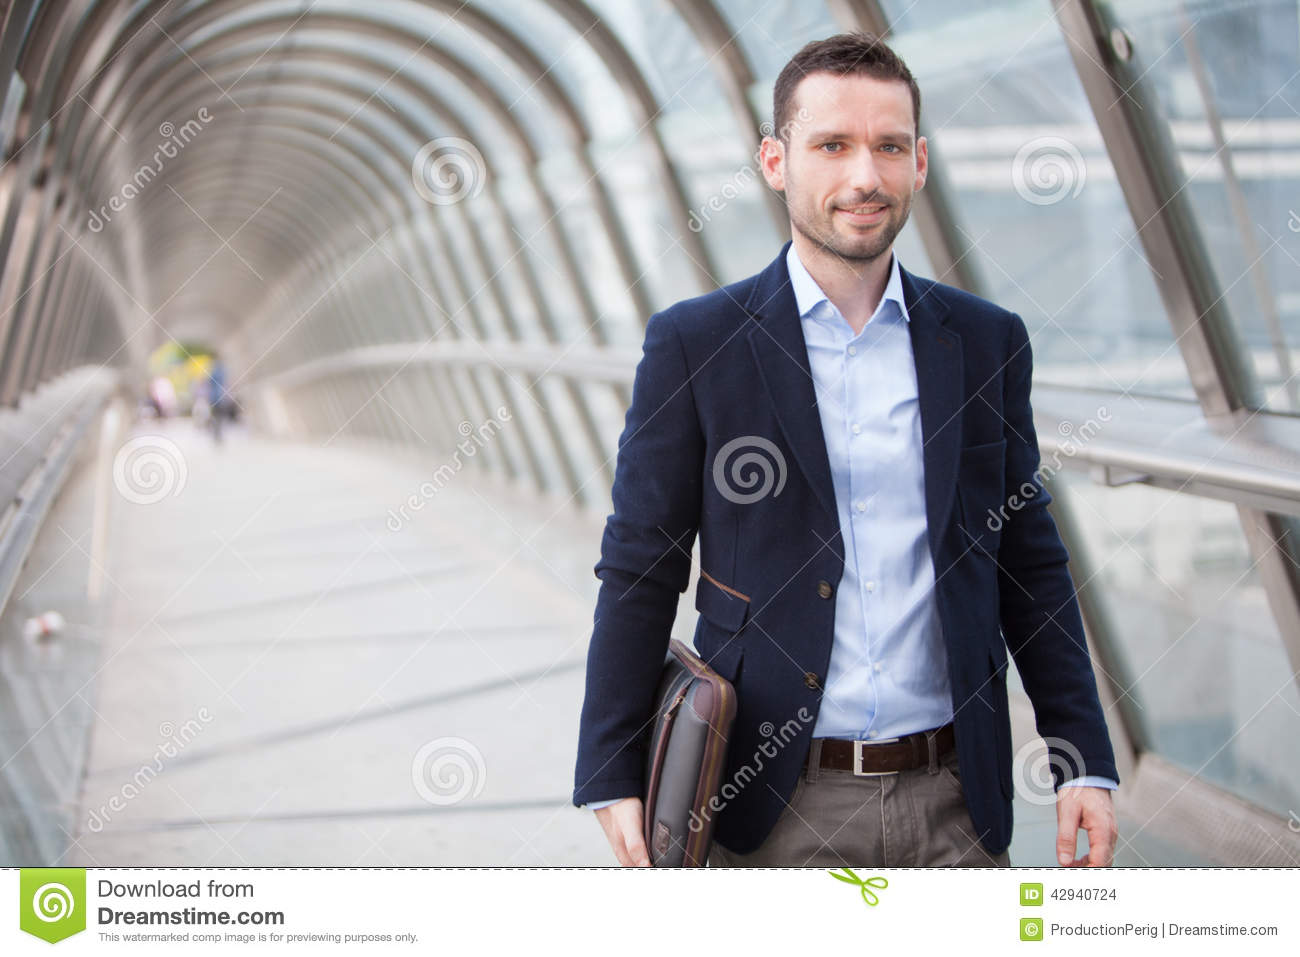 Young attractive man walking in a airport hall